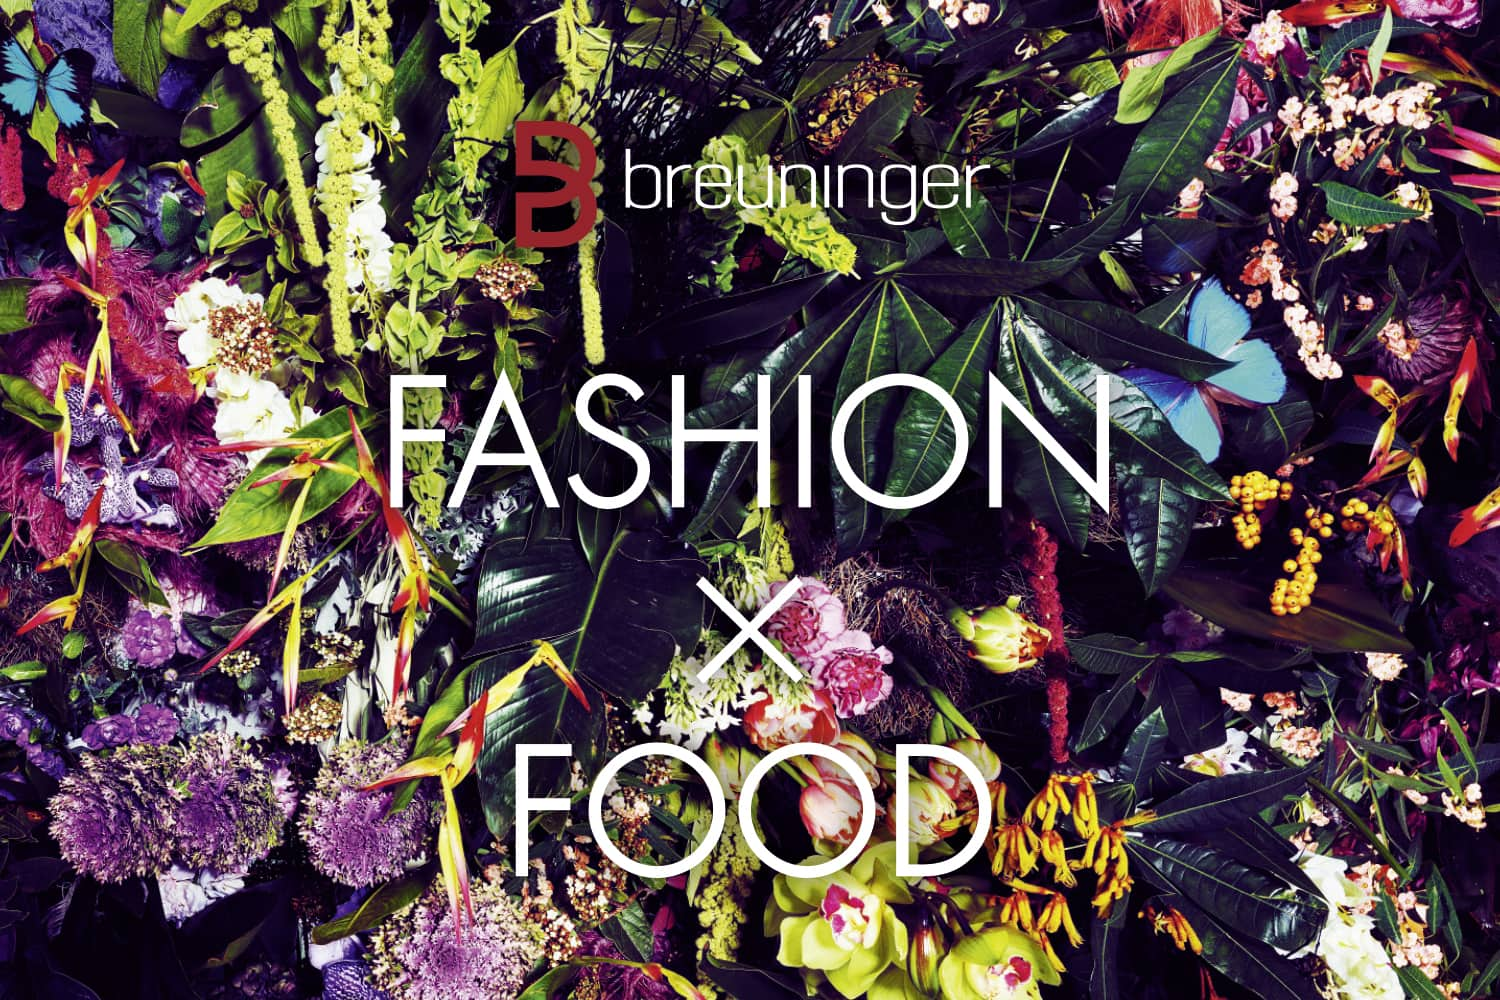 Breuninger Fashion x Food